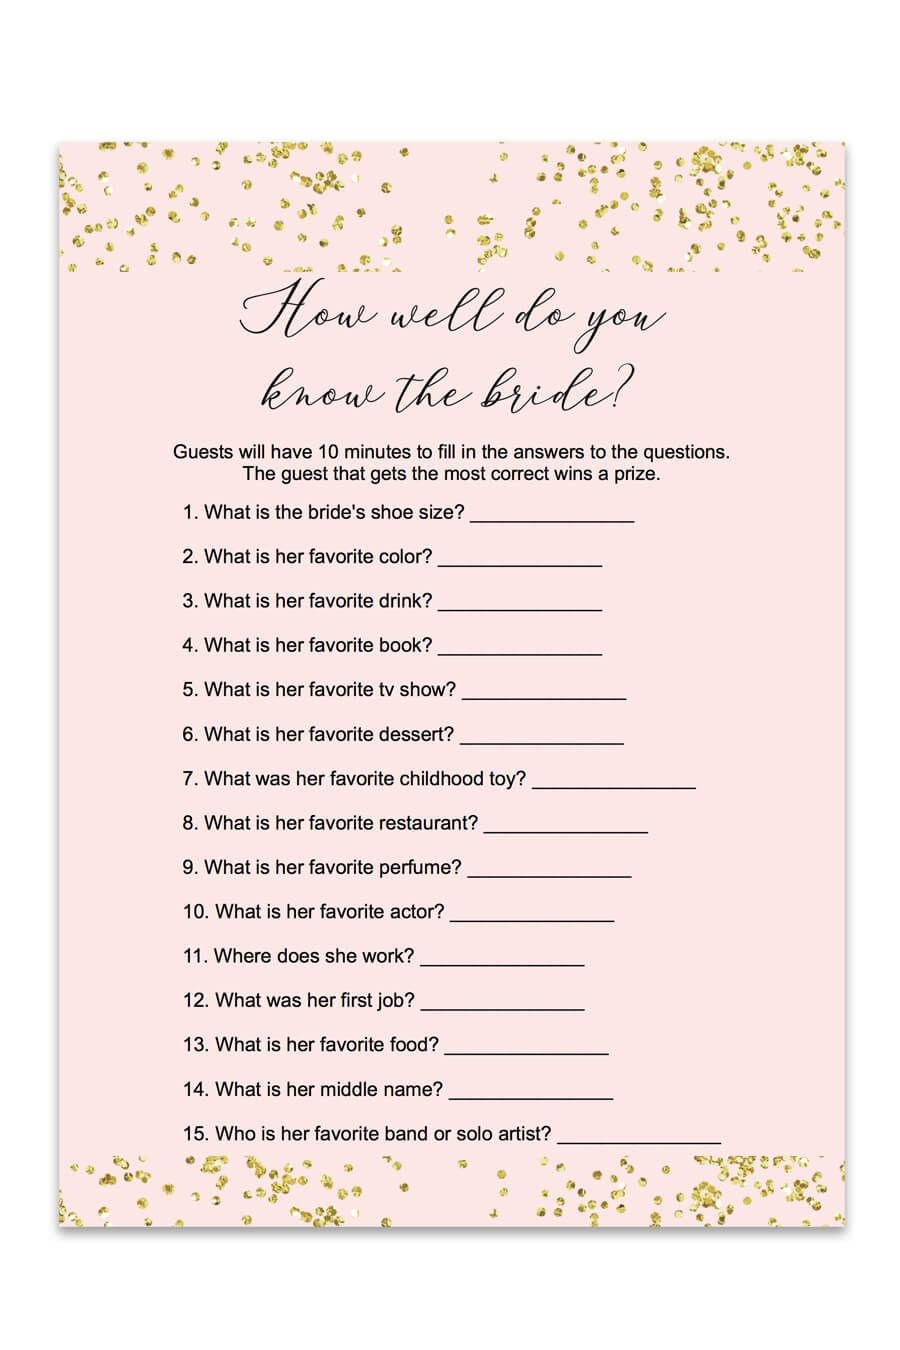 Blush And Confetti How Well Do You Know The Bride Game | Love<3 - How Well Do You Know The Bride Free Printable